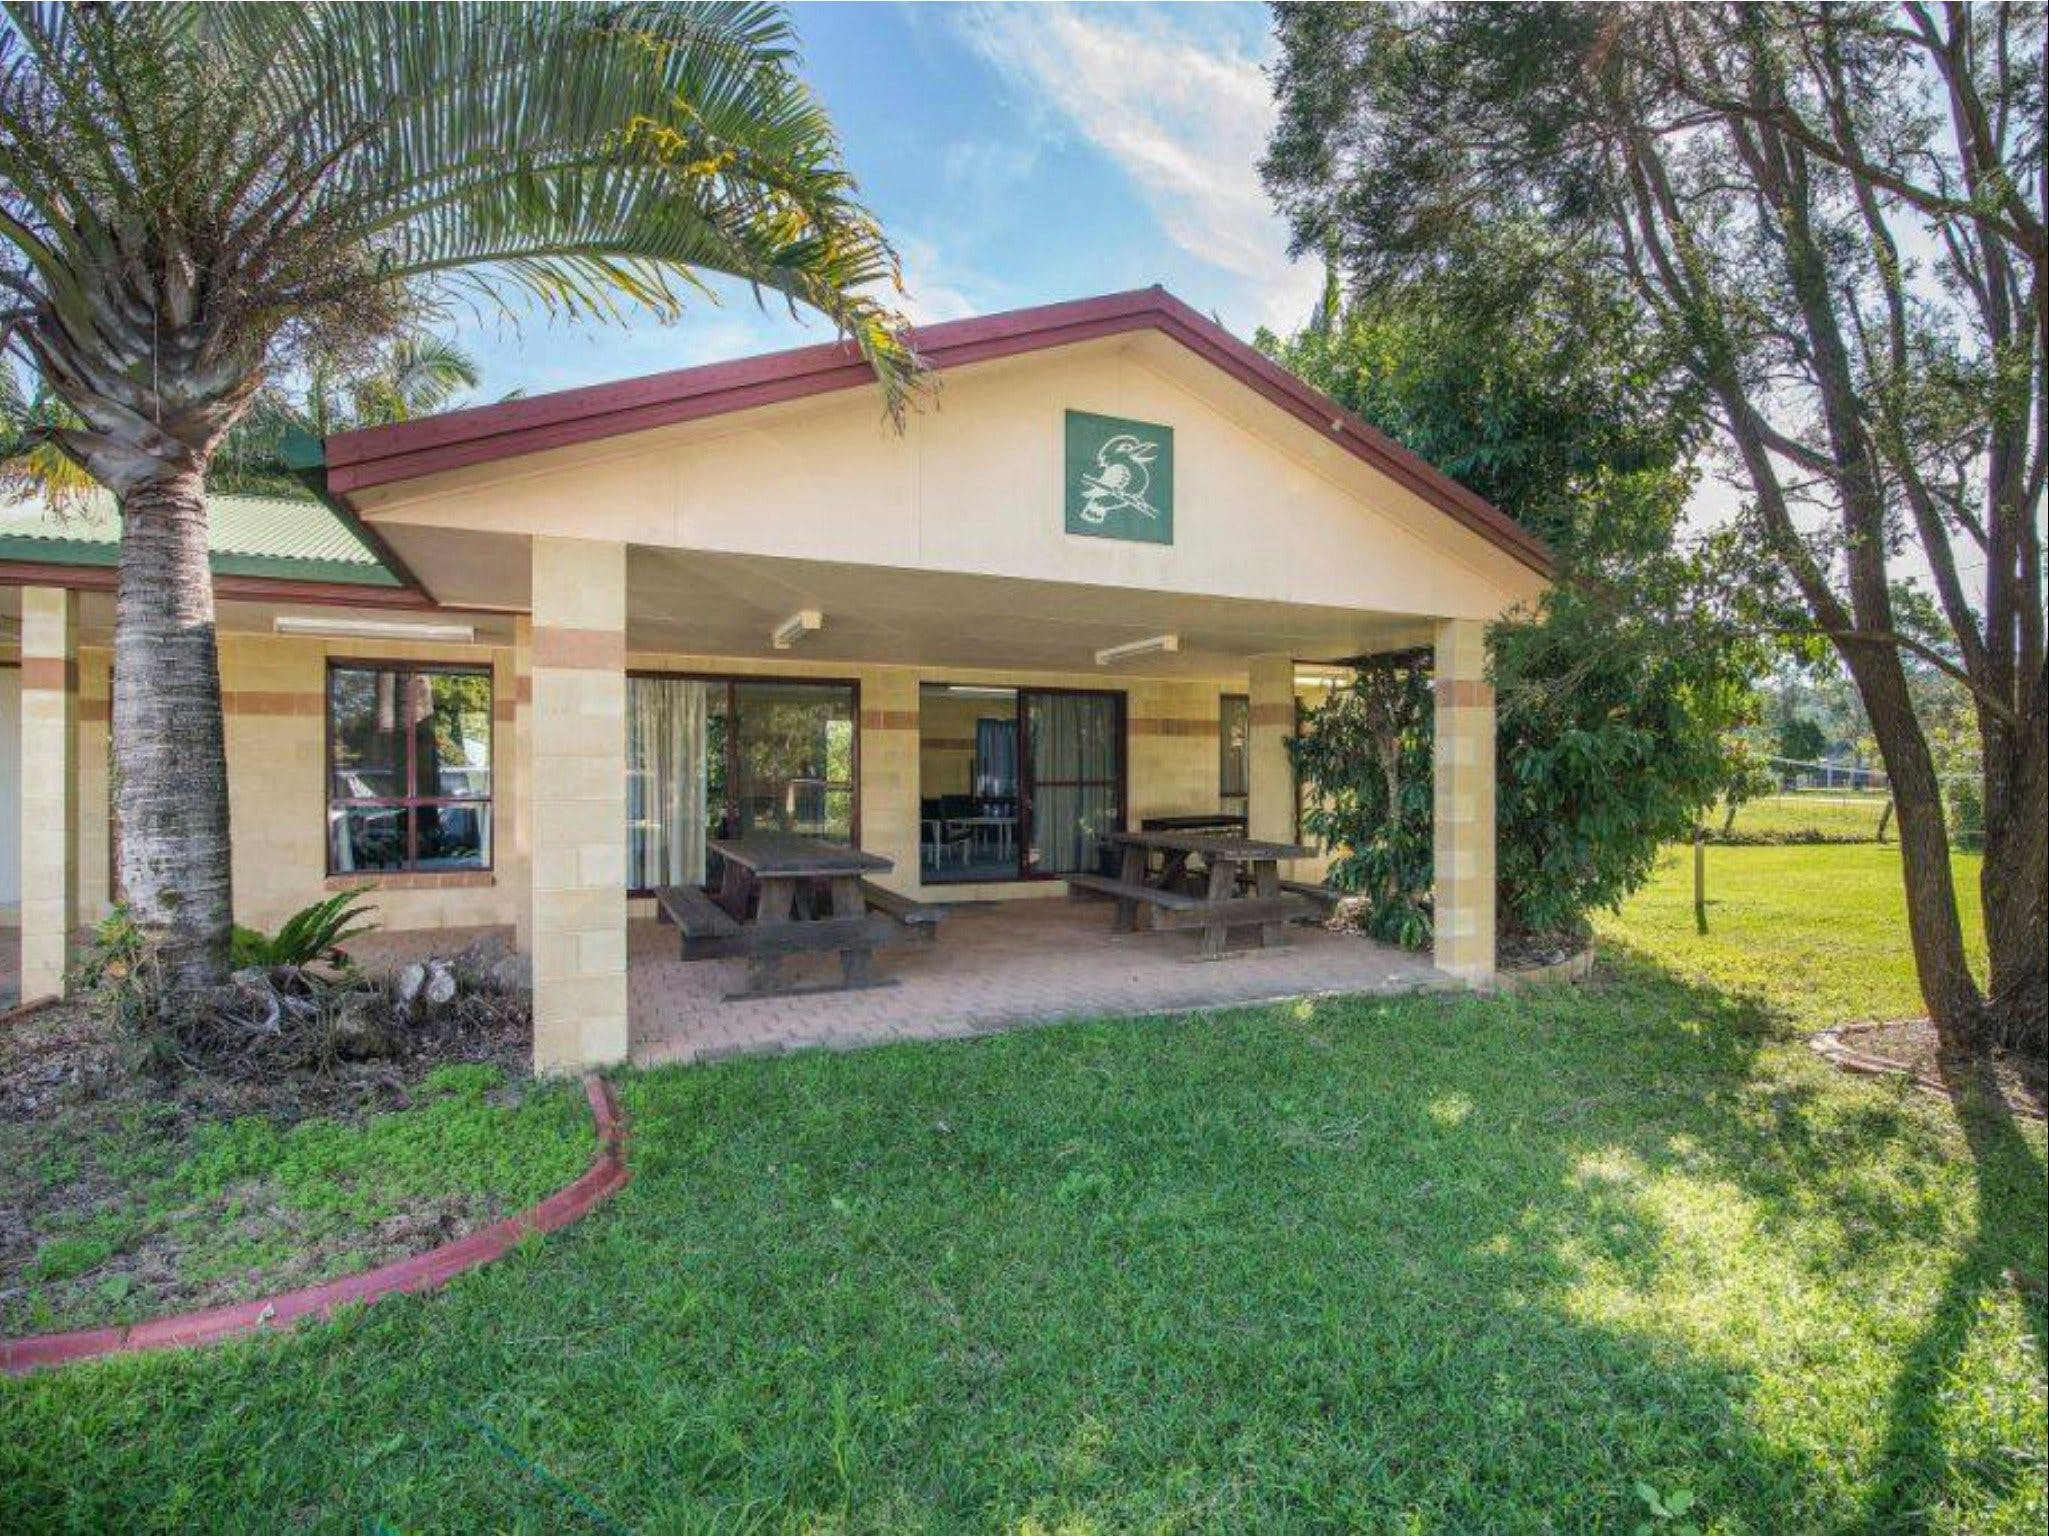 Mooyabil Farm Holidays - Accommodation Perth